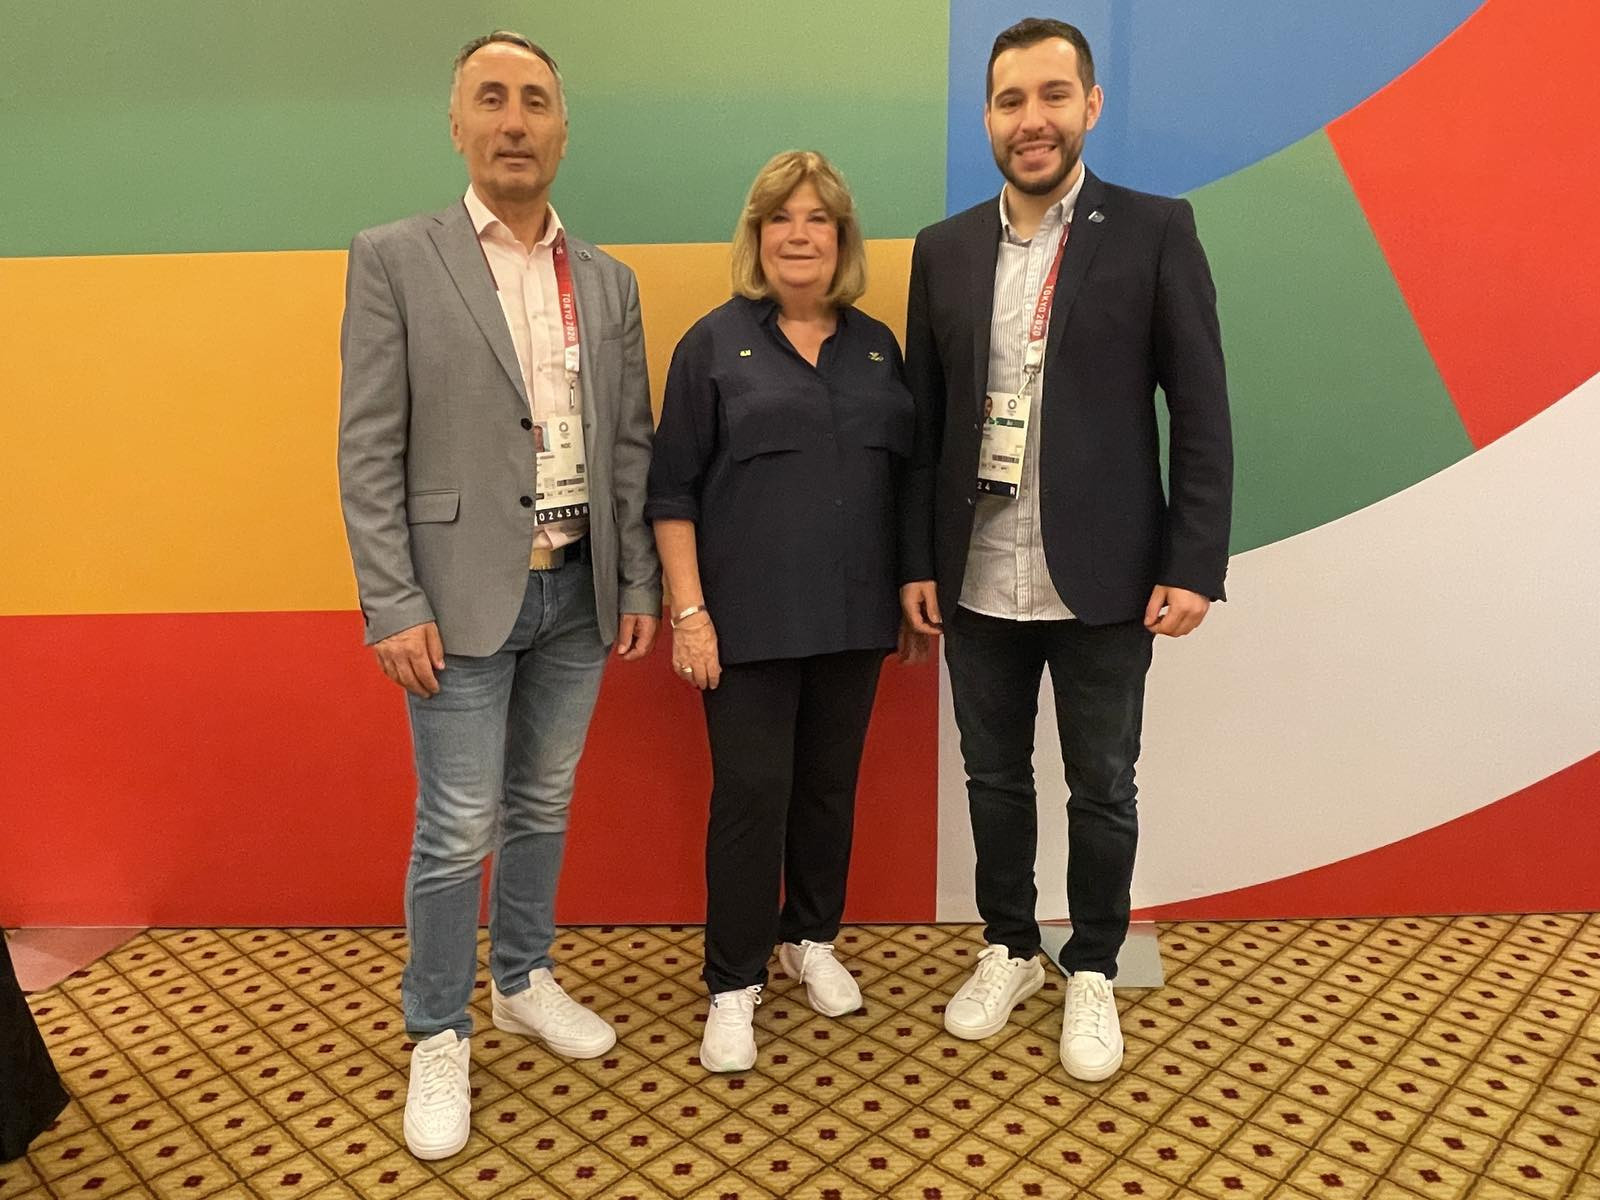 Kosovo has won two golds in judo at Tokyo 2020, and its NOC met with Lindberg last weekend ©Kosovo Olympic Committee